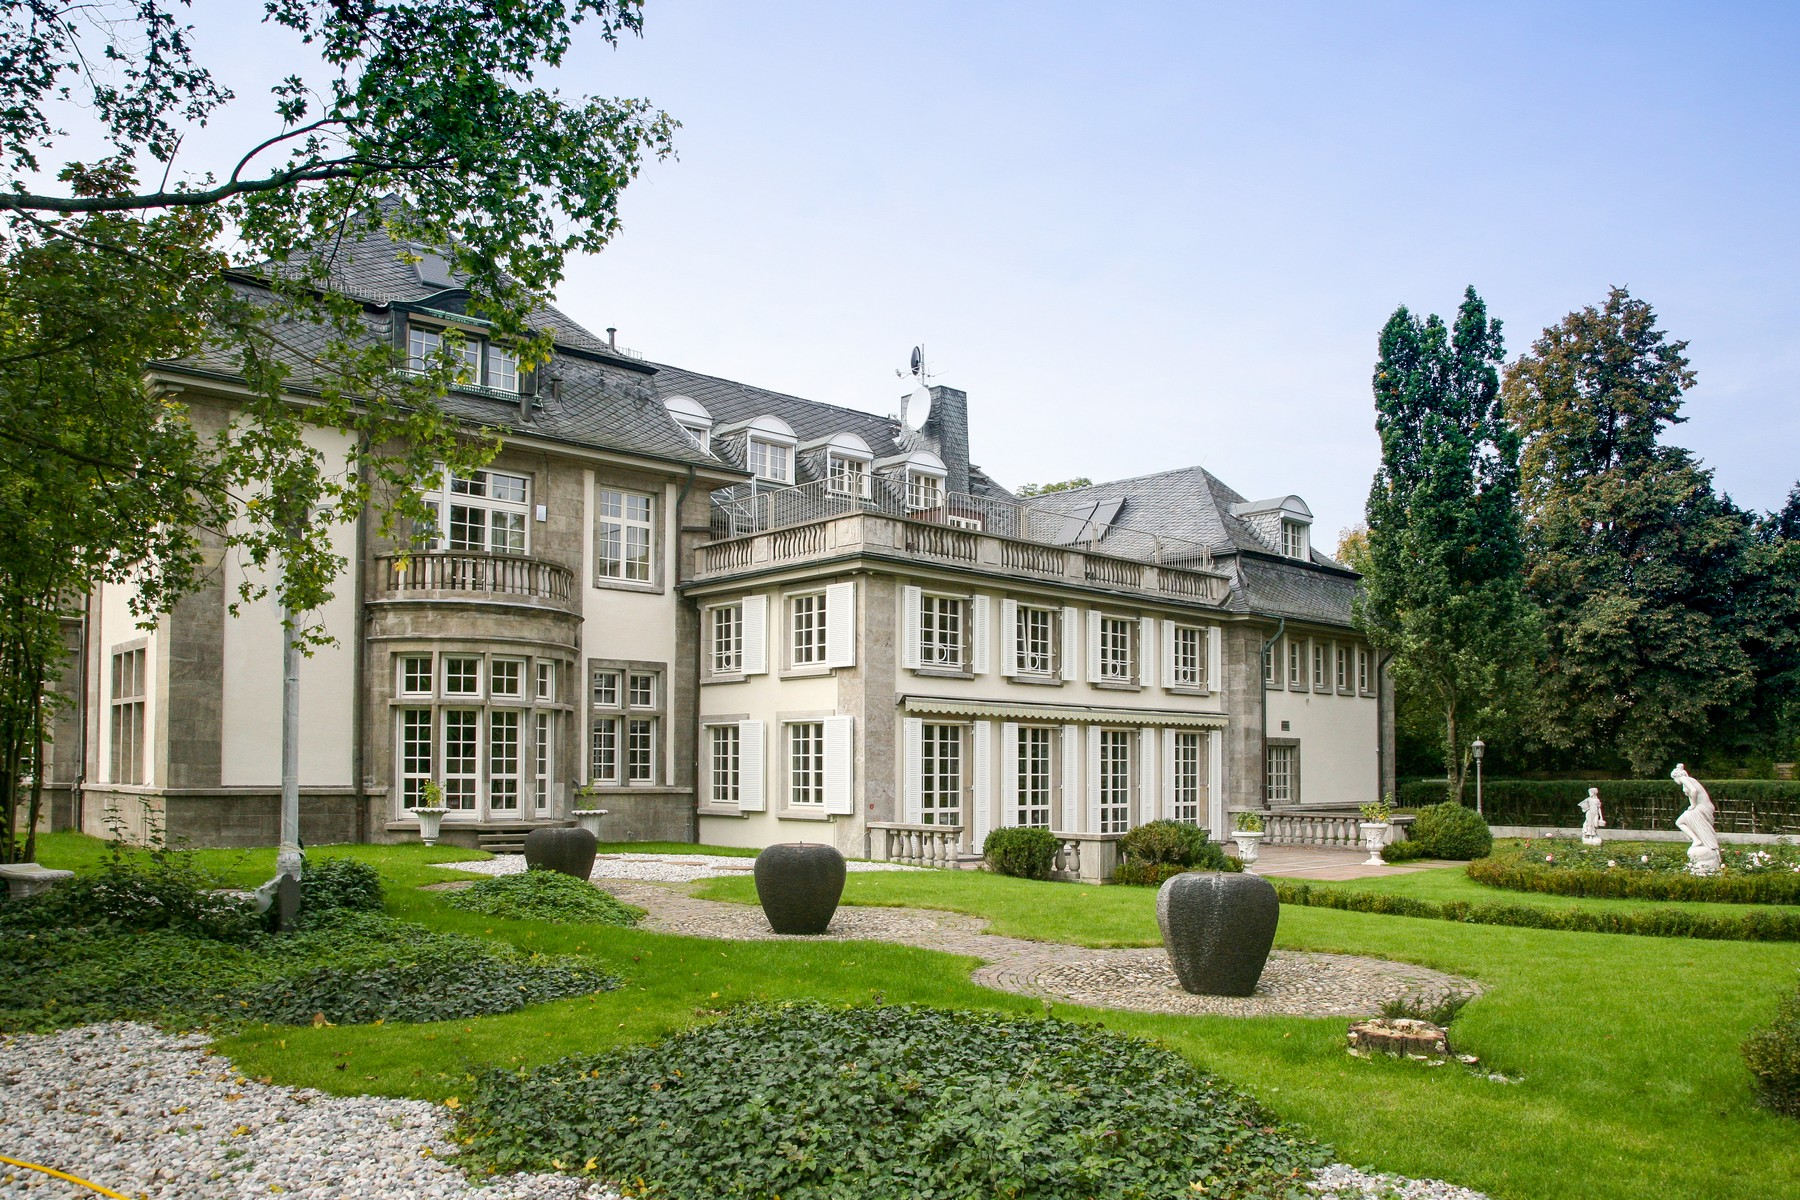 Single Family Home for Sale at Haute Couture in Frankfurt - Diplomatenviertel Frankfurt, Hessen 60487 Germany